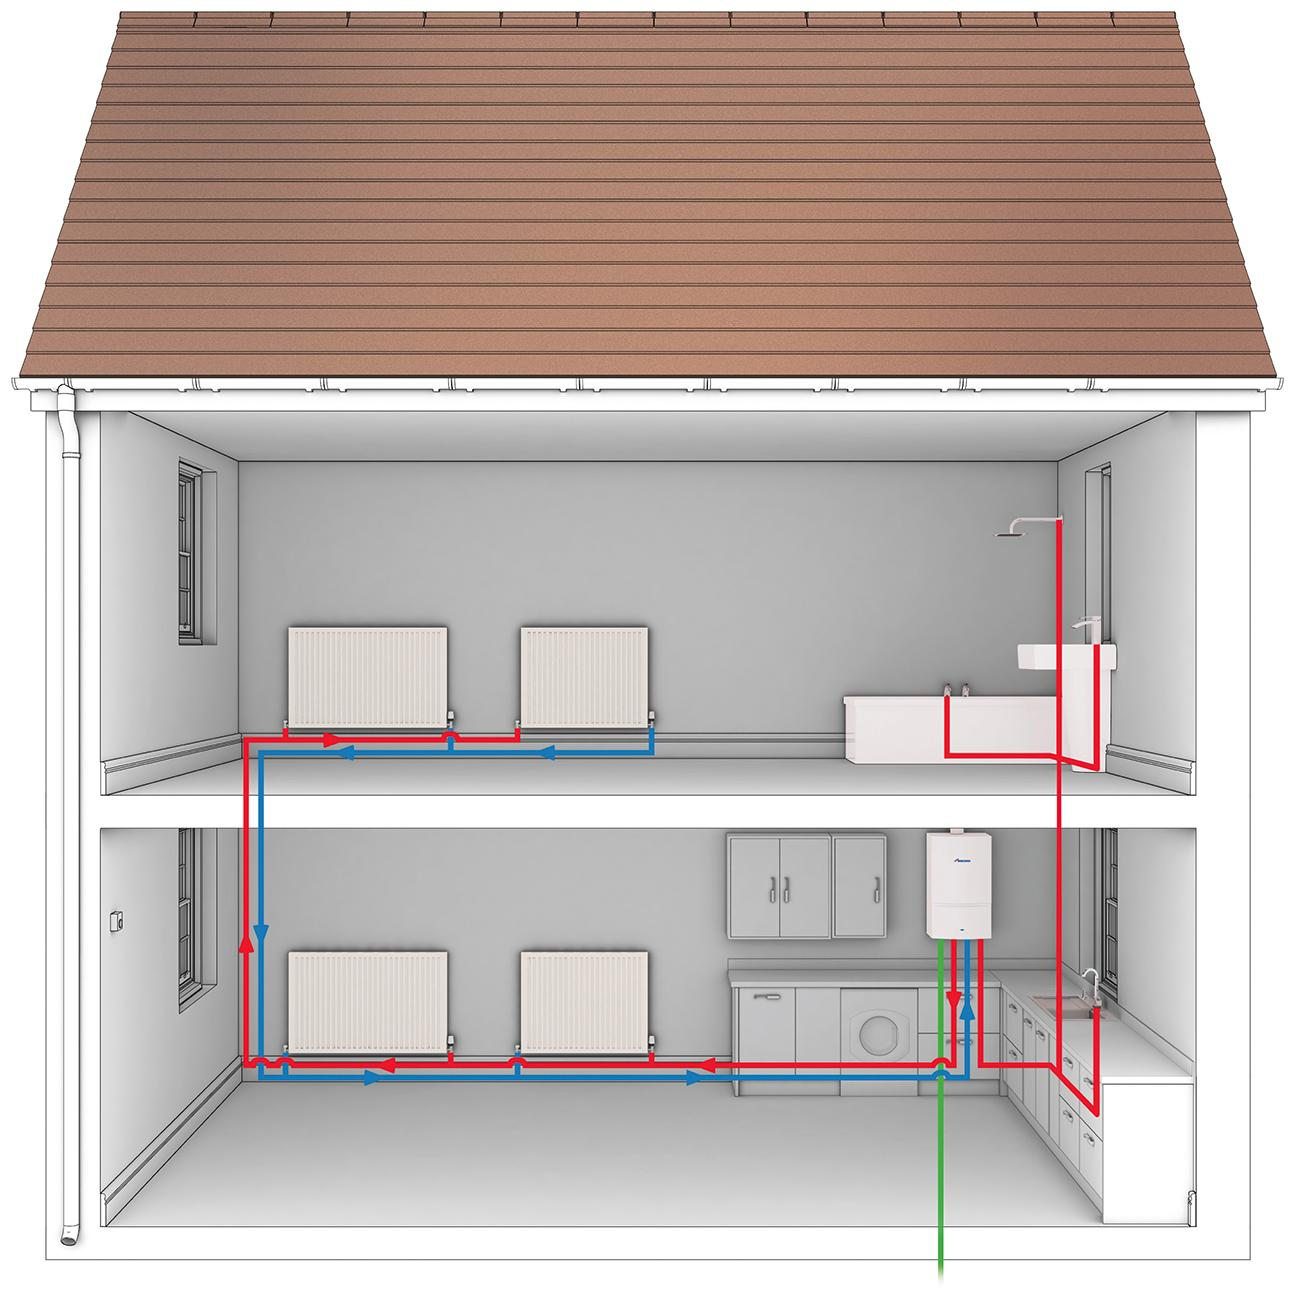 Diagram of a combi boiler setup